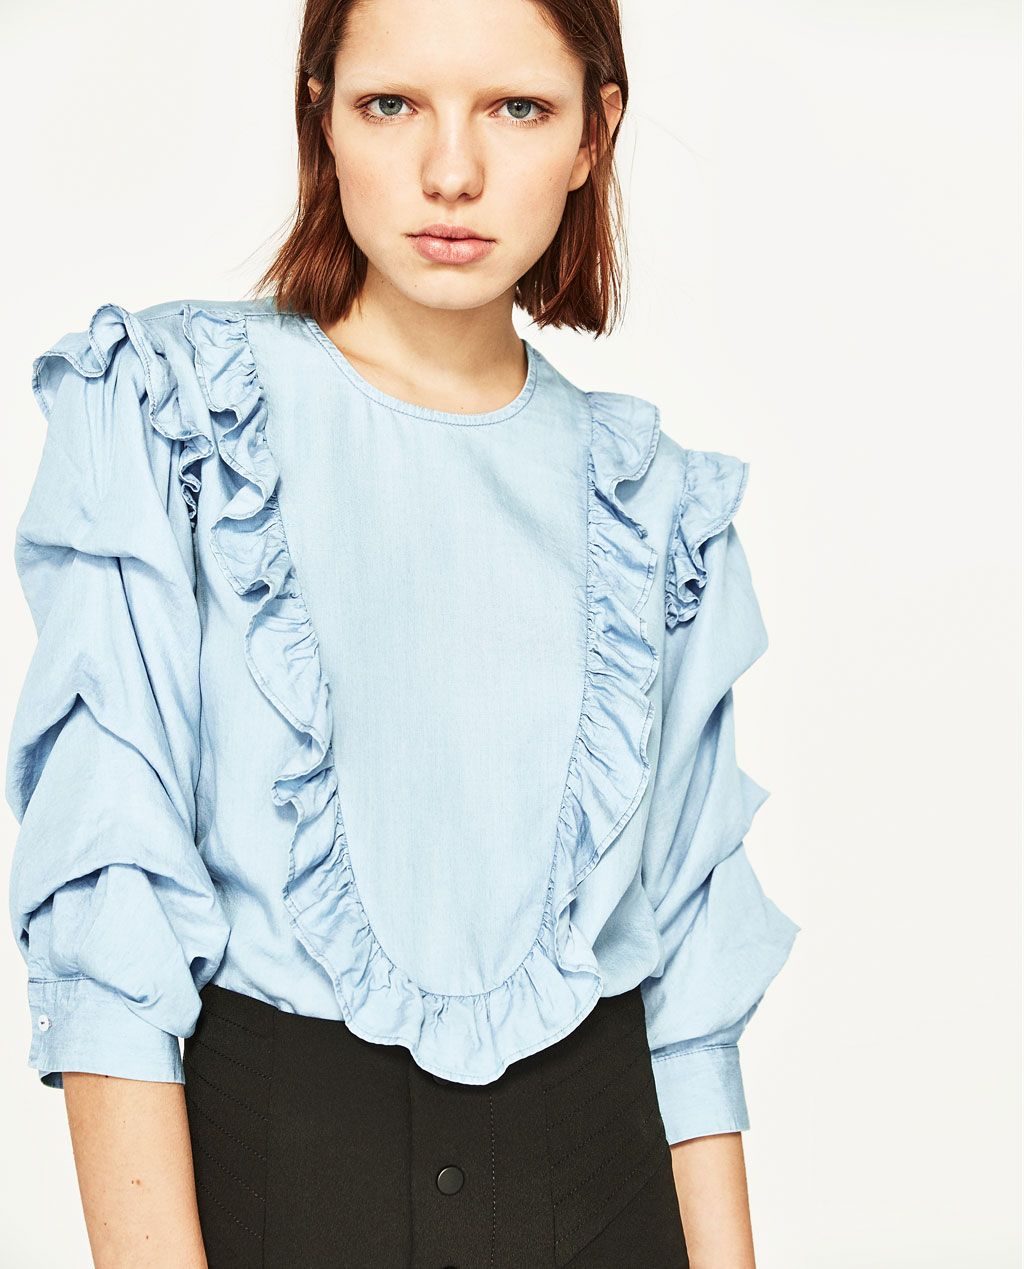 d9766a68ee9d7 BLOUSE WITH FRILLS-View All-TOPS-WOMAN